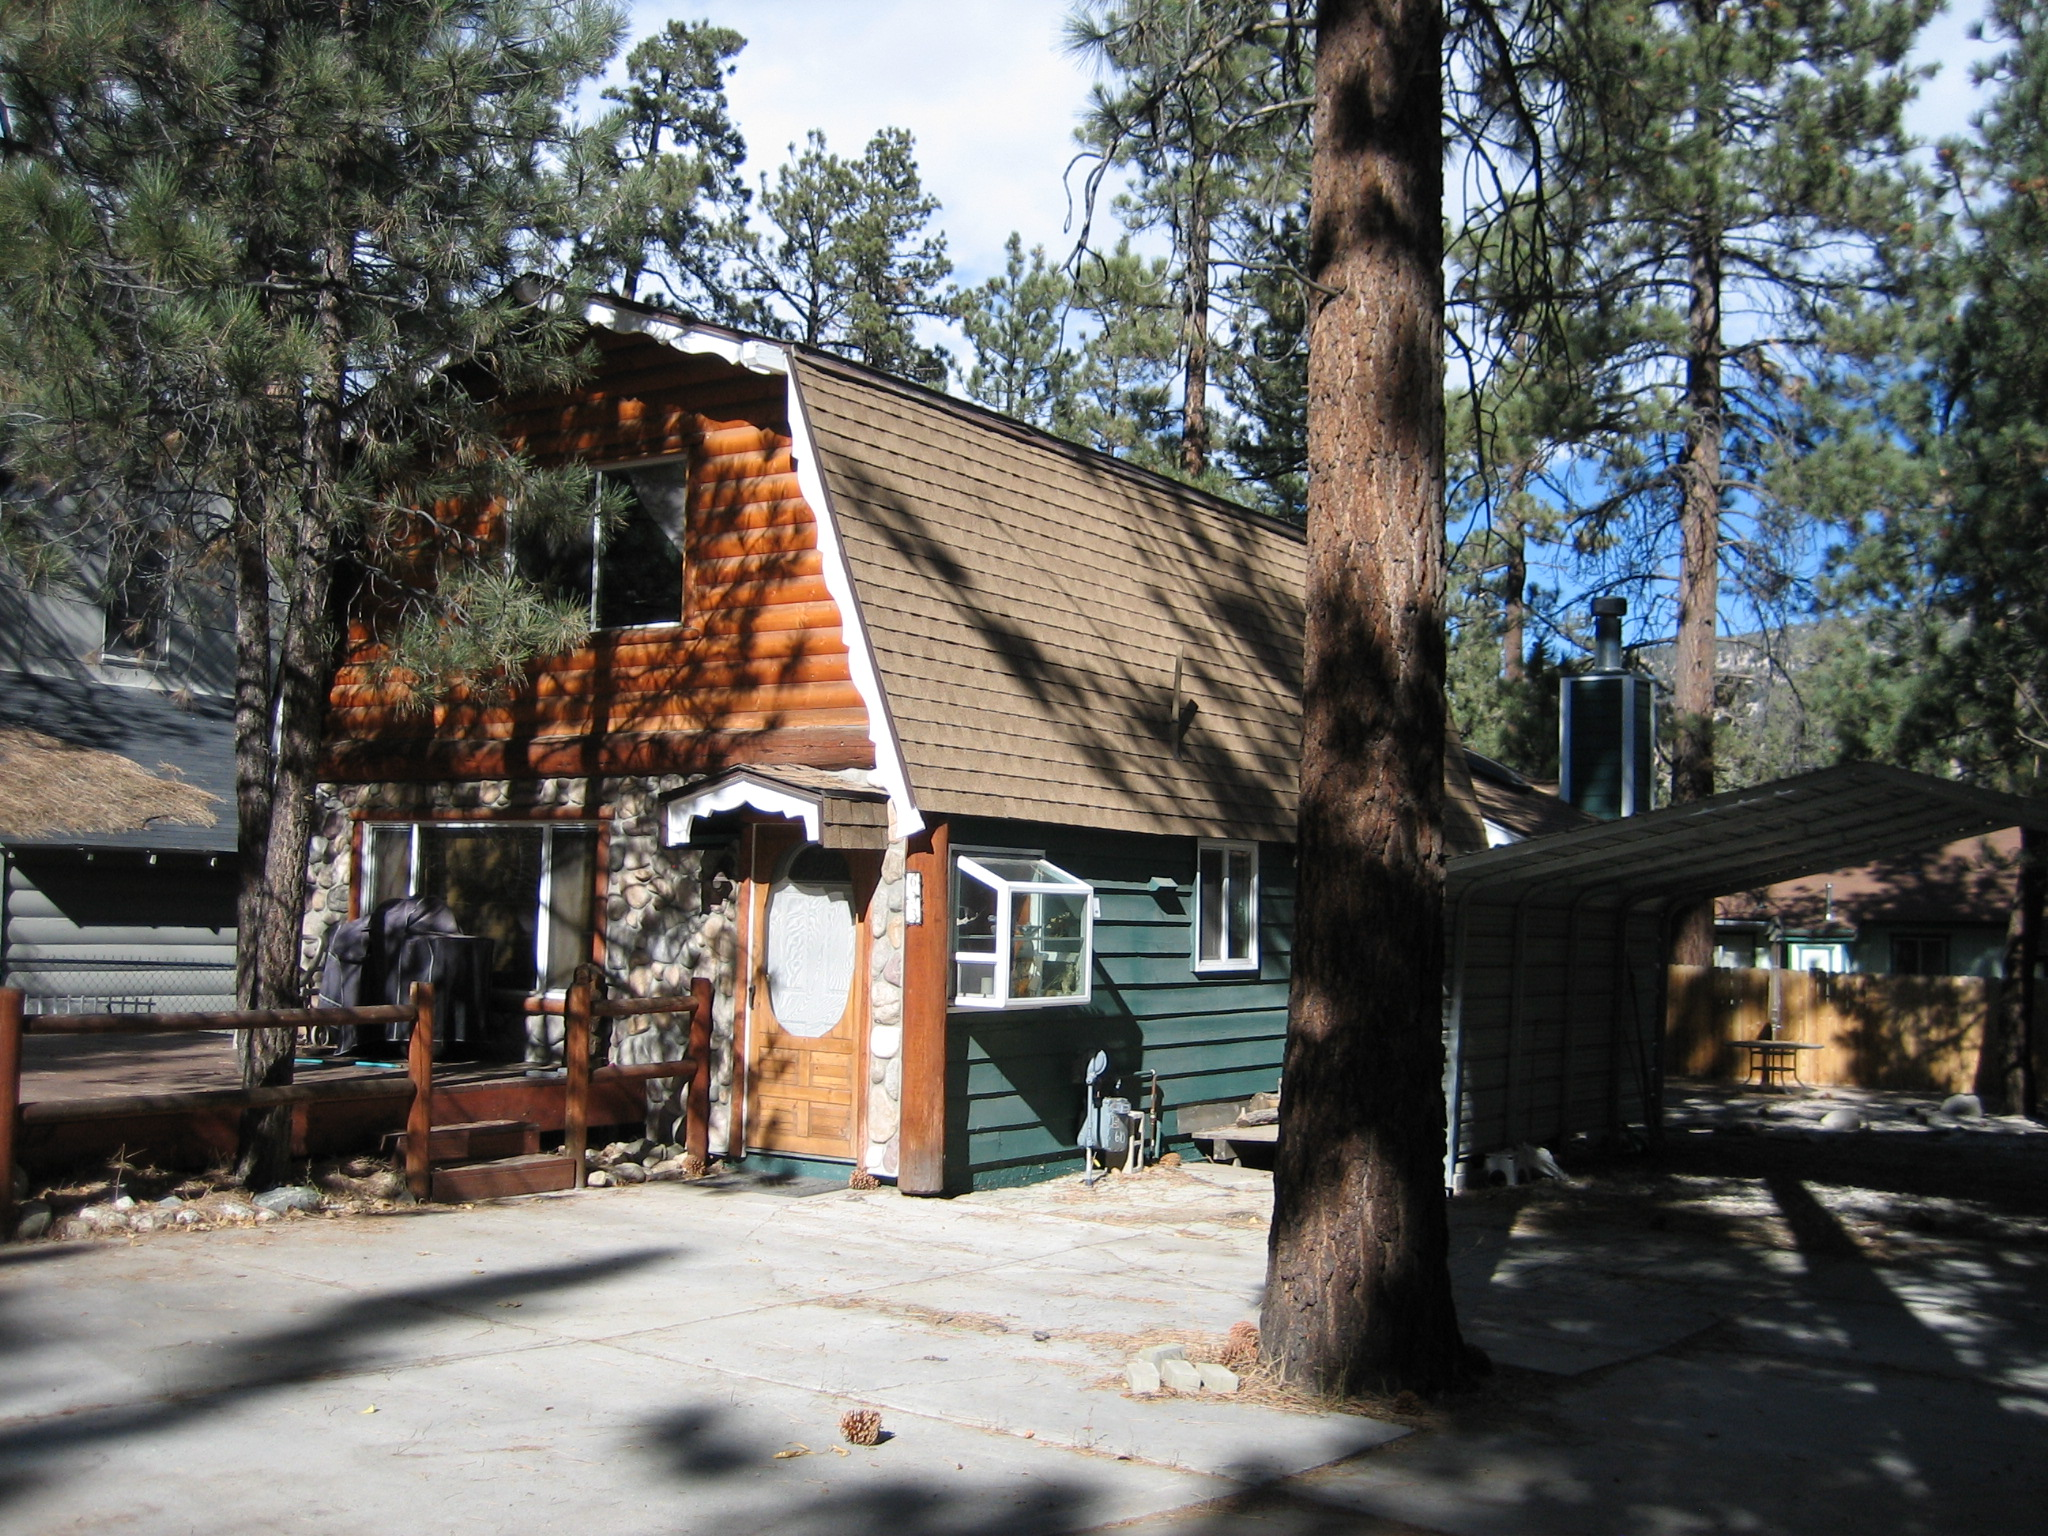 Single Family Home for Sale at 633 Irving Big Bear City, California, 92314 United States